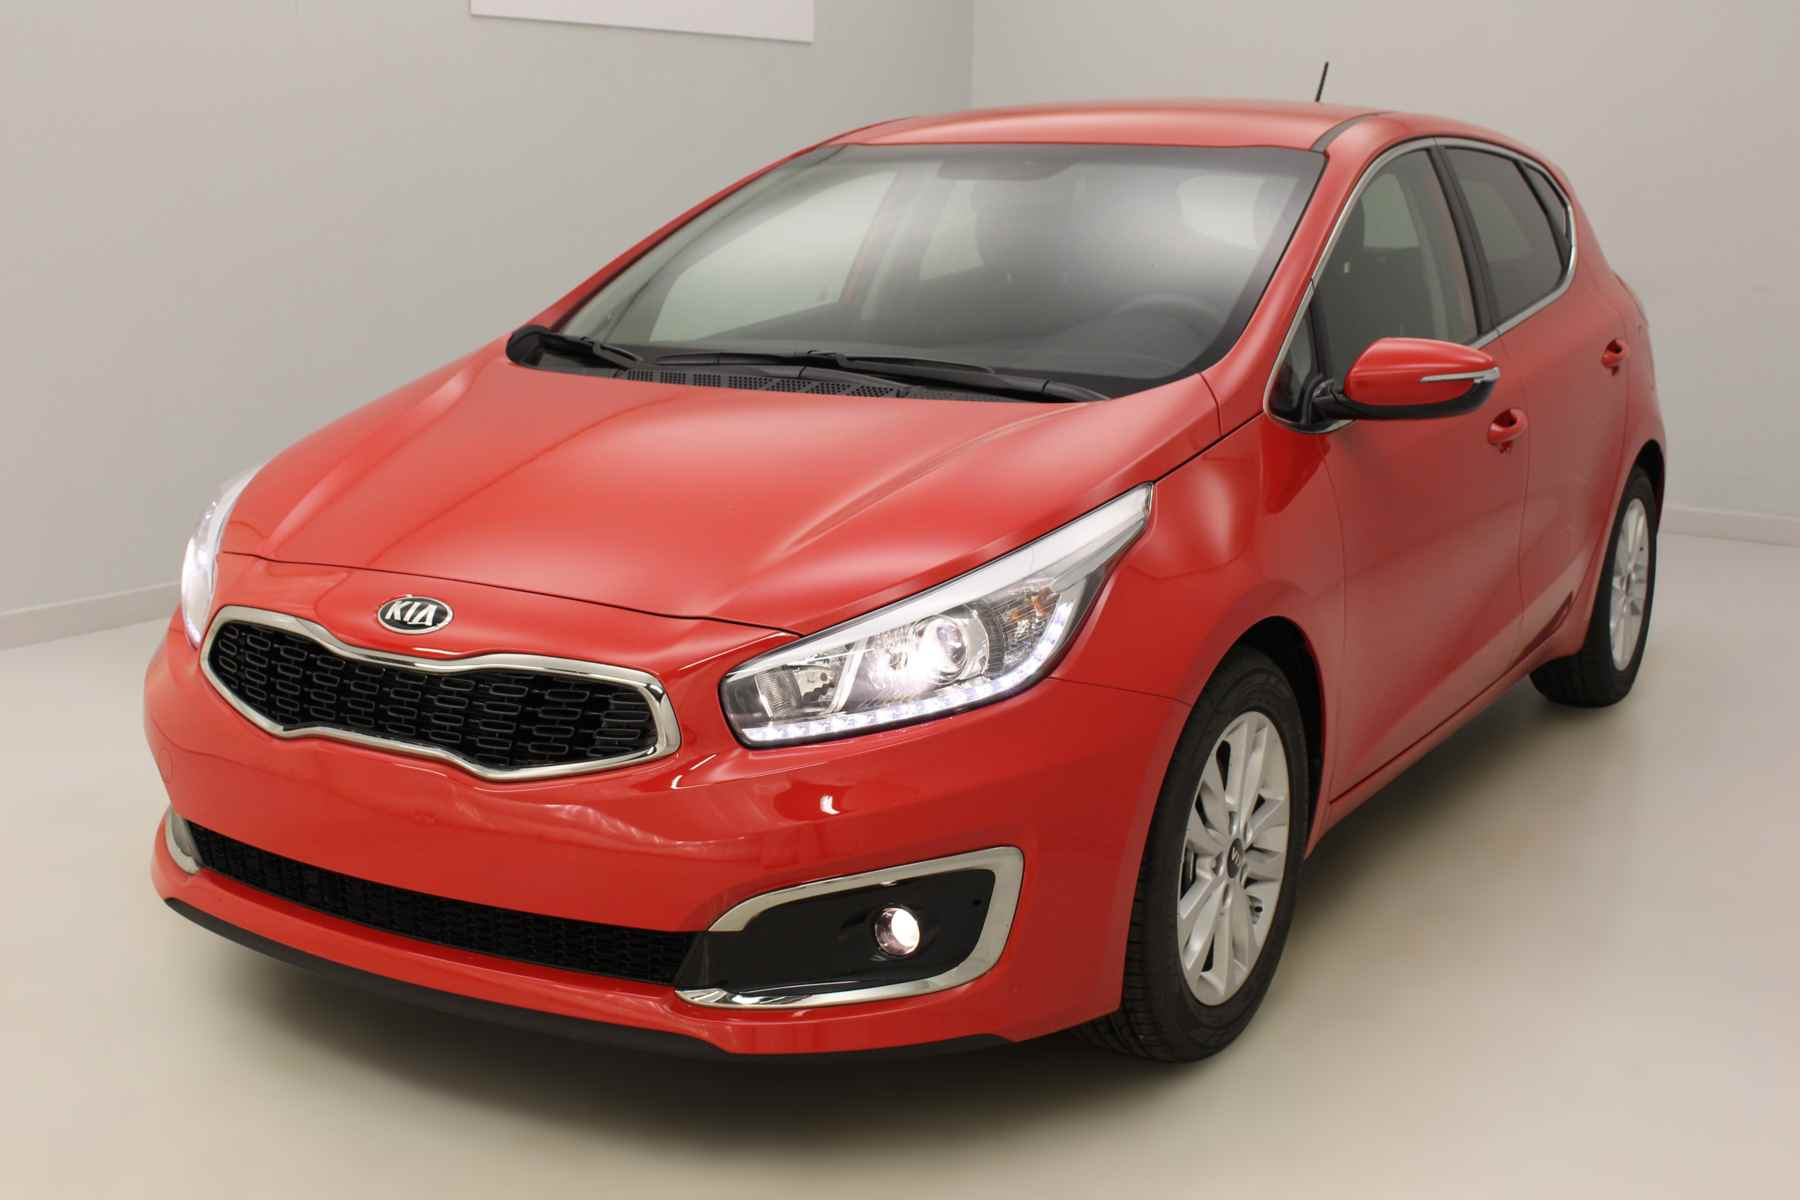 KIA Ceed 1.0 T-GDI 120 ch ISG Active Rouge Racing + Roue de secours avec options